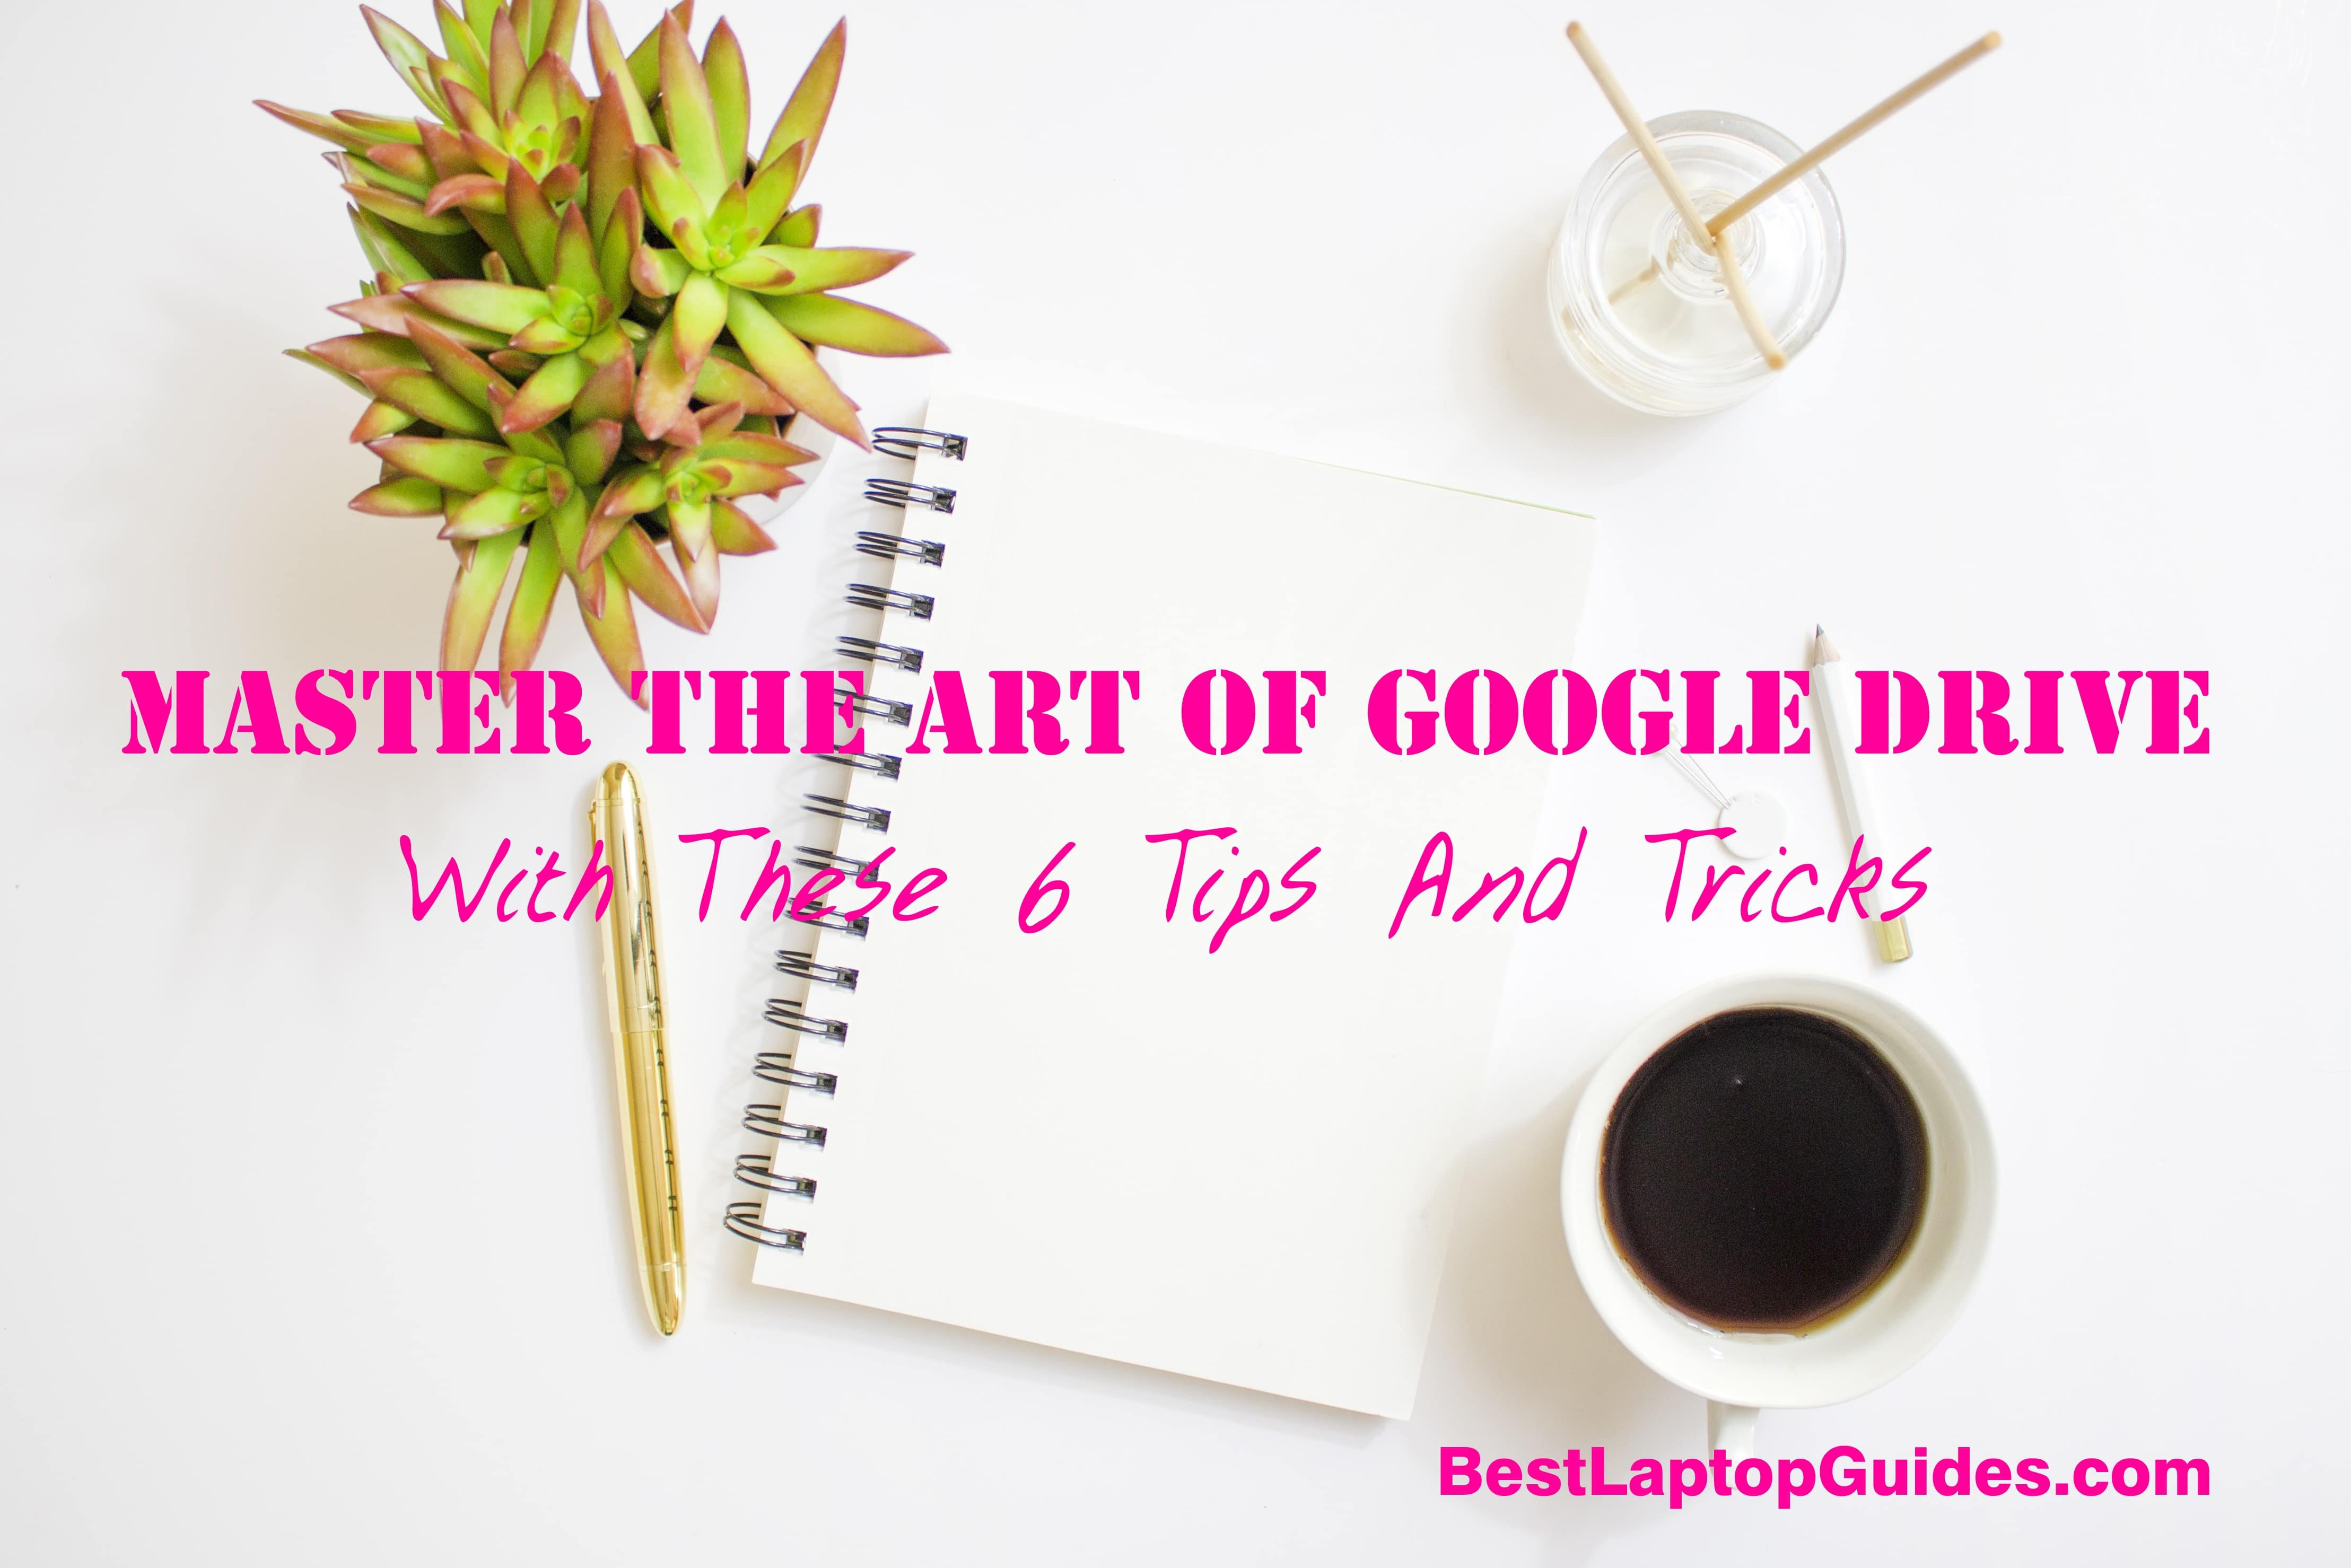 Master The Art Of Google Drive With These 6 Tips And Tricks